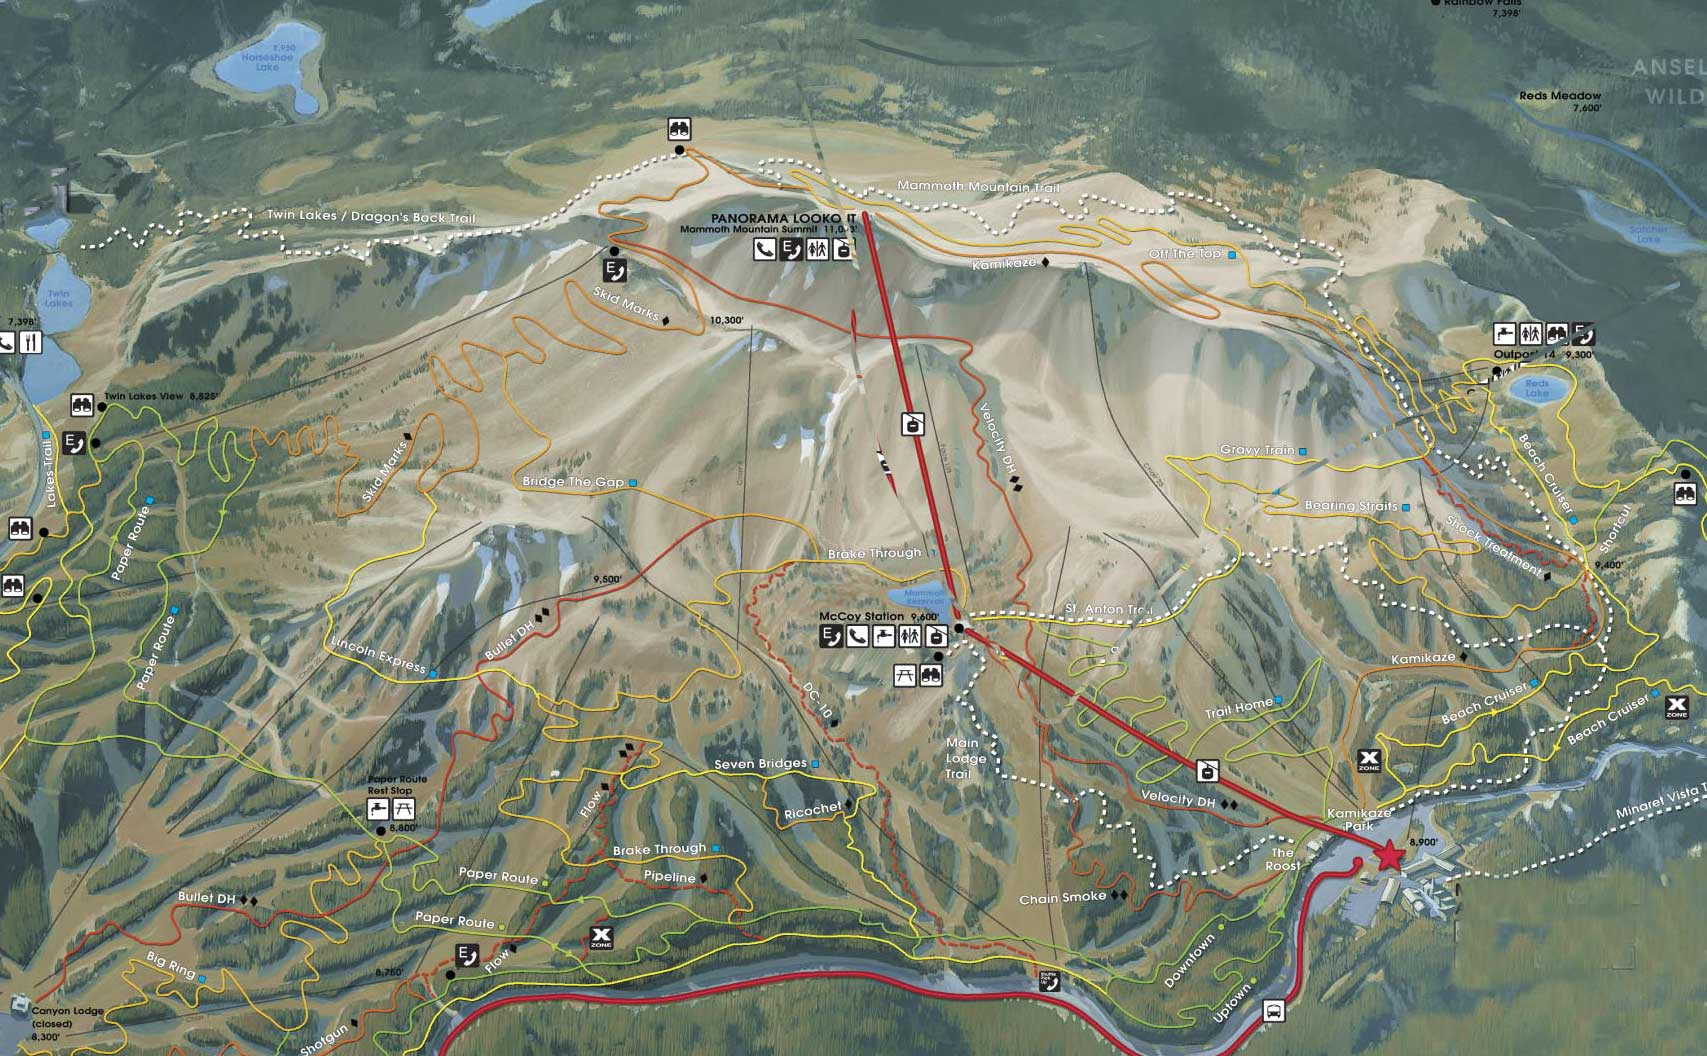 mammoth mountain bike park trail map provided courtesy of city concierge. mammoth mountain bike park trail map  peak summit   named